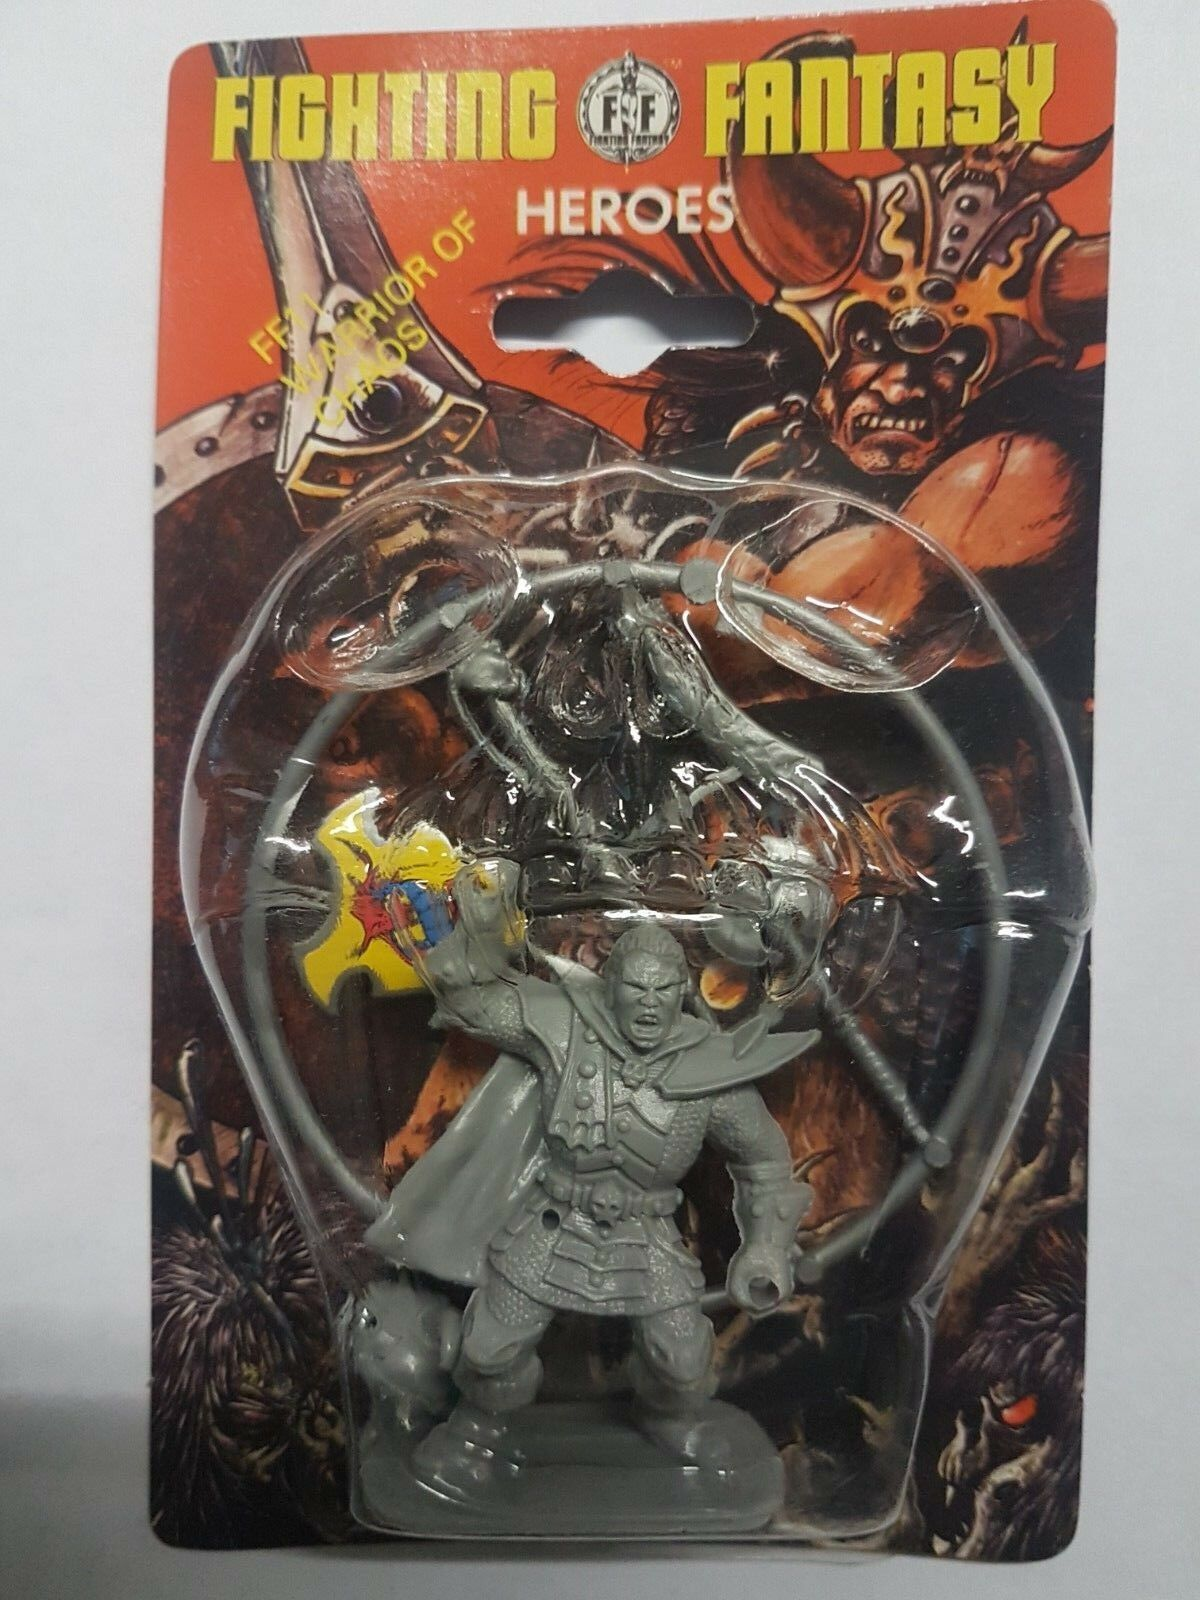 FF11 FF11 FF11 WARRIOR OF CHAOS - FIGHTING FANTASY HEROES - GAMES WORKSHOP - SEALED 2e3991